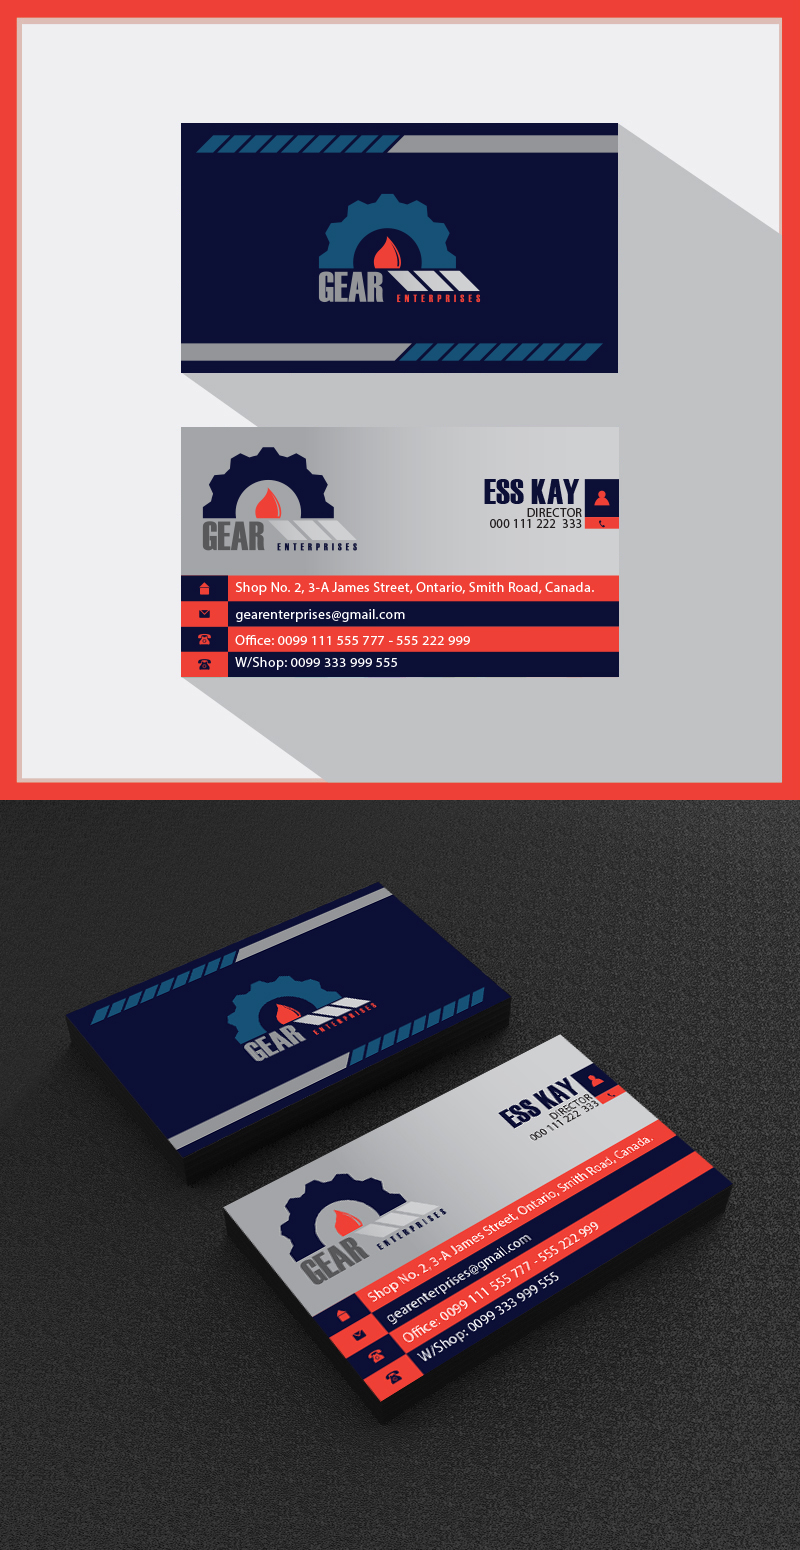 60 business card template designs collection a graphic world business card template design for engineering company flashek Gallery